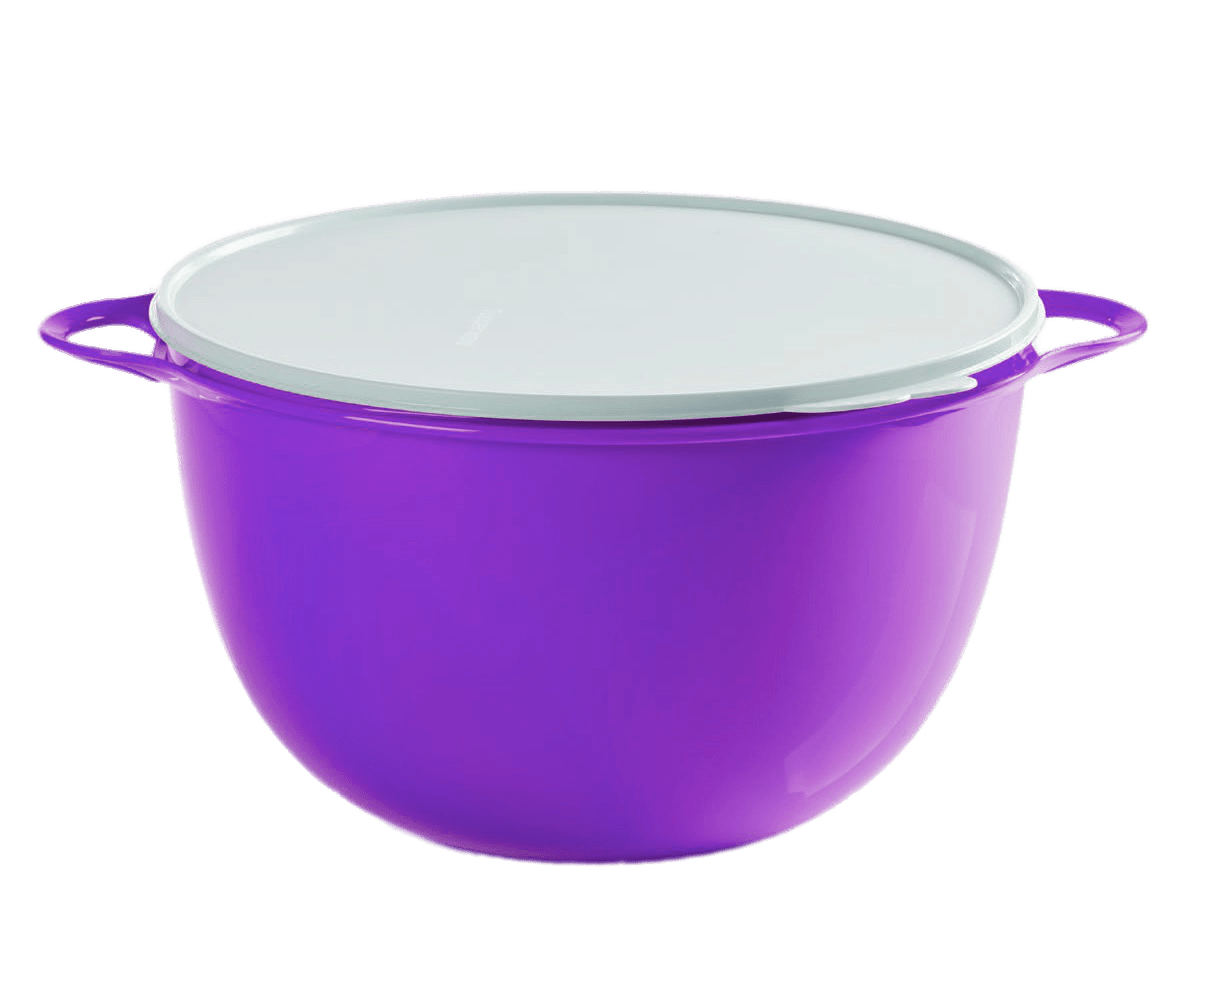 Tupperware Jumbo Criativa transparent PNG.